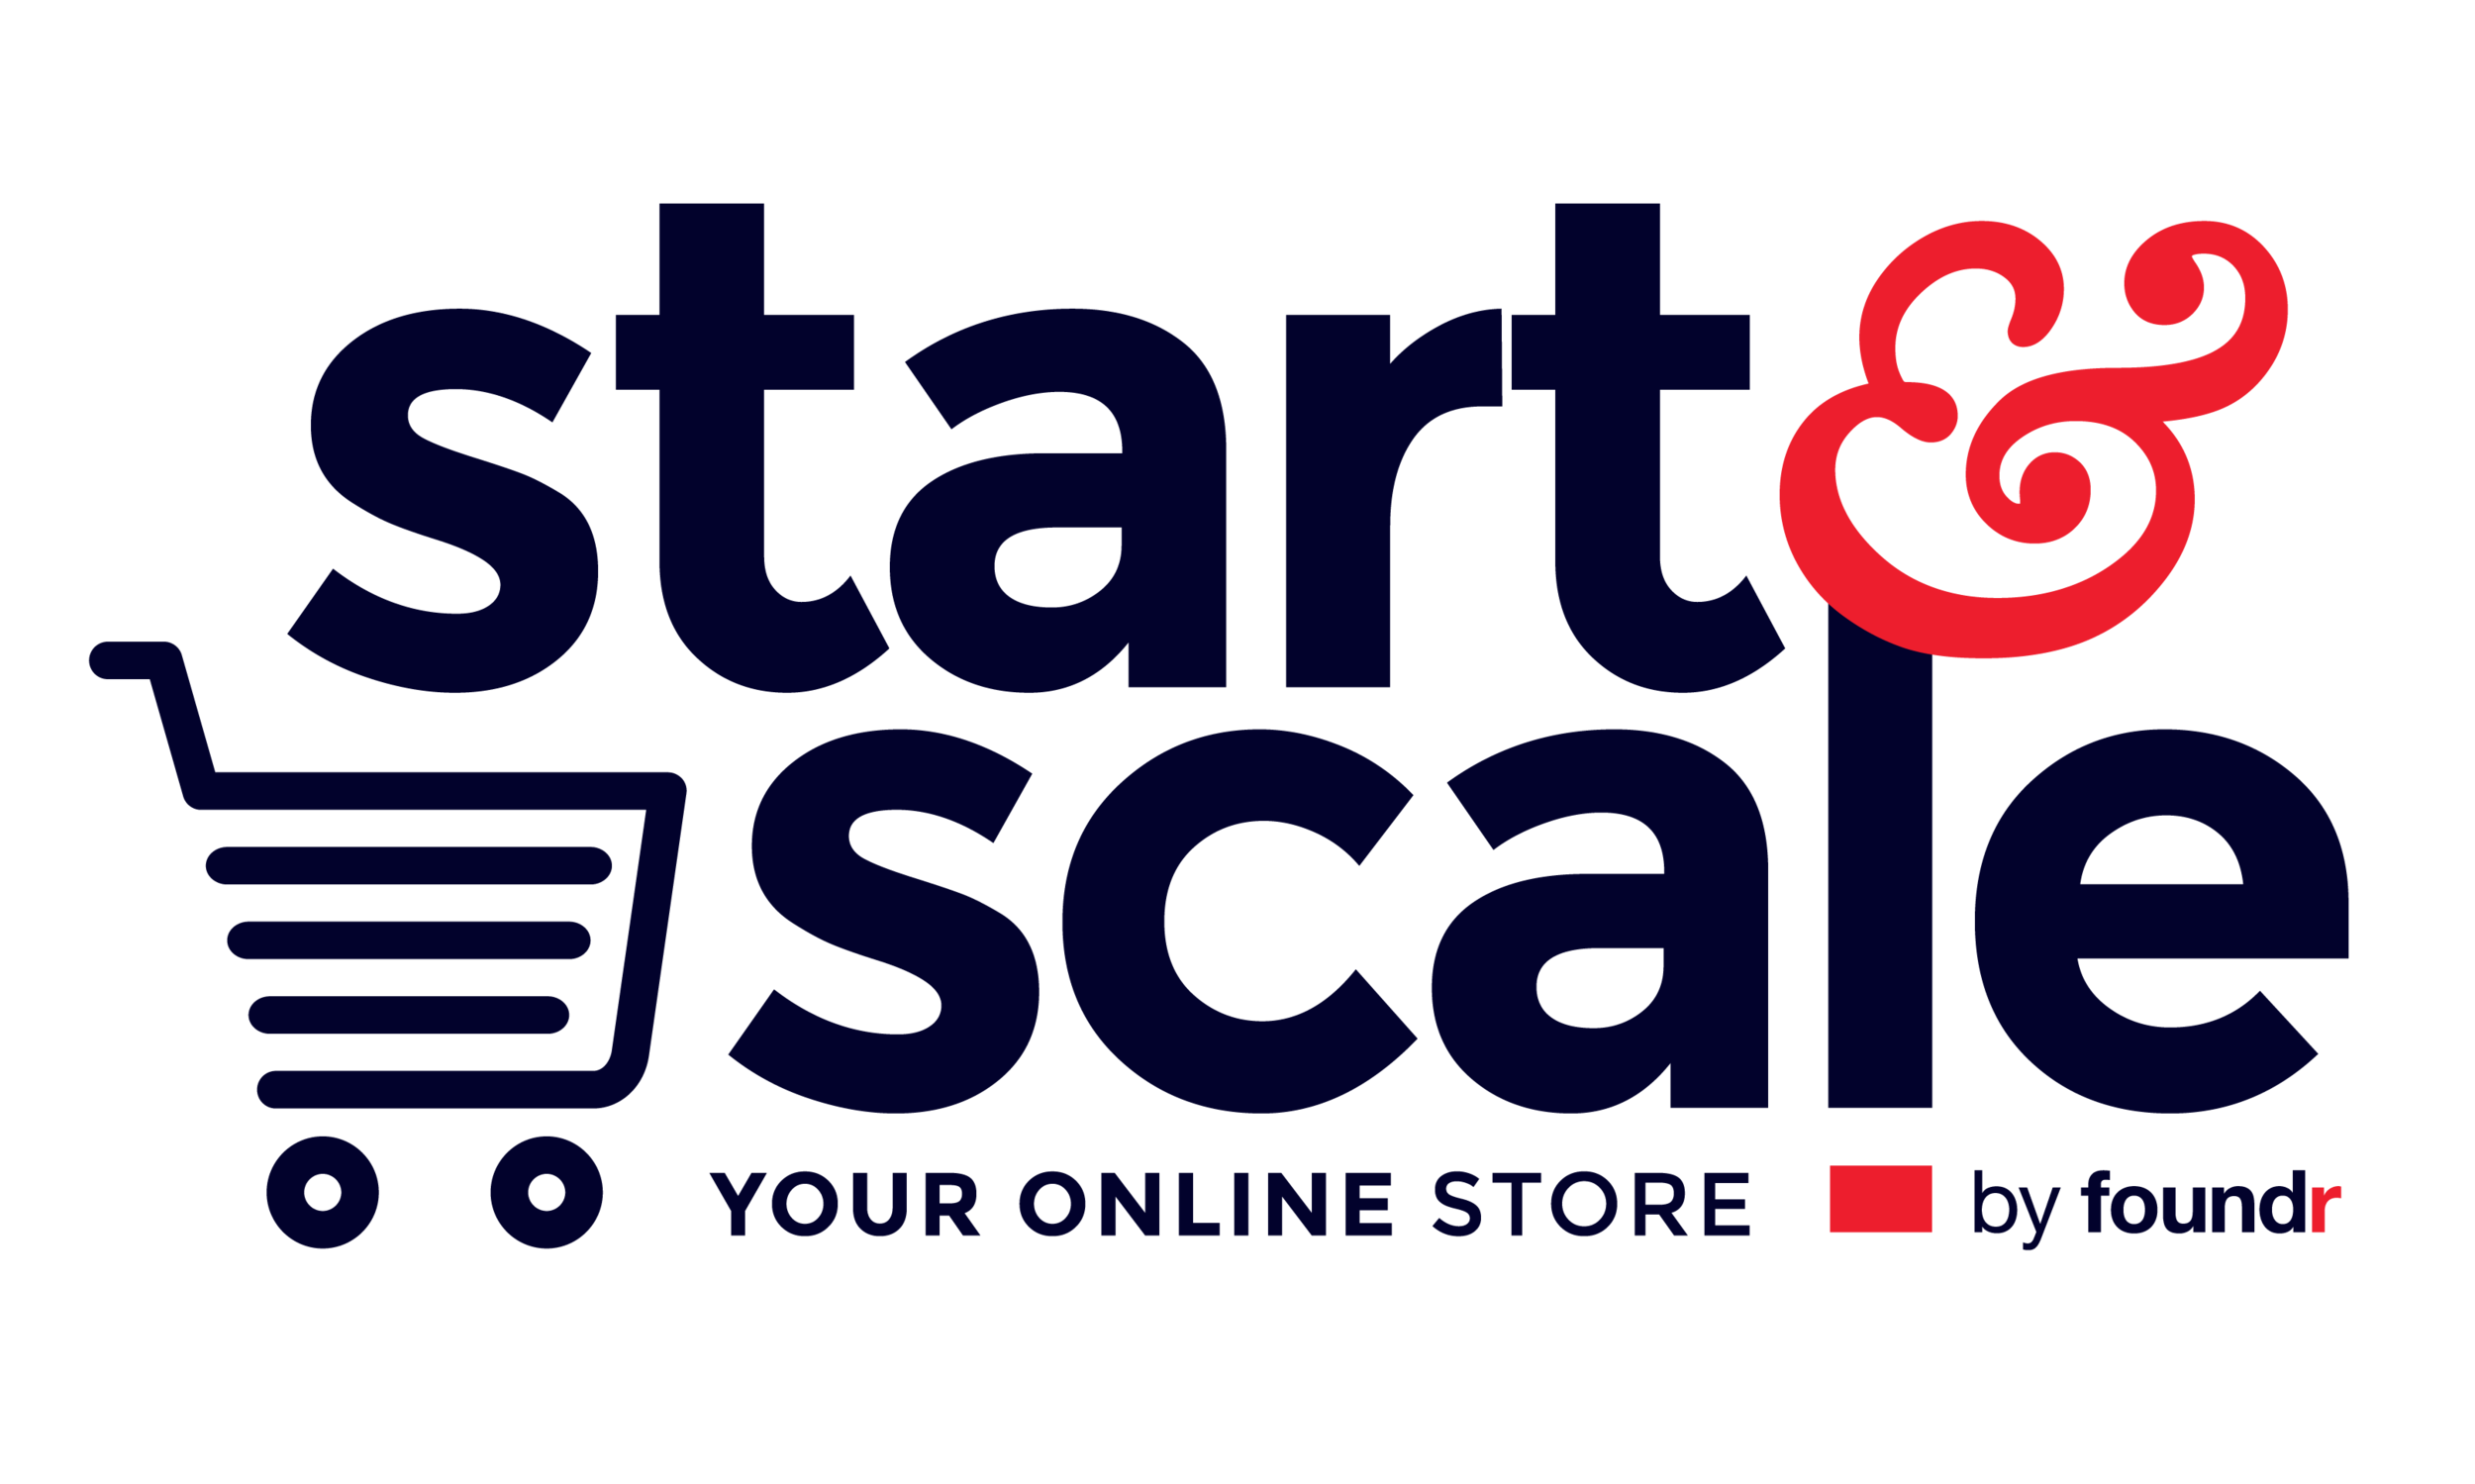 Foundr-Start-and-Scale-Logo-Dark-01.png